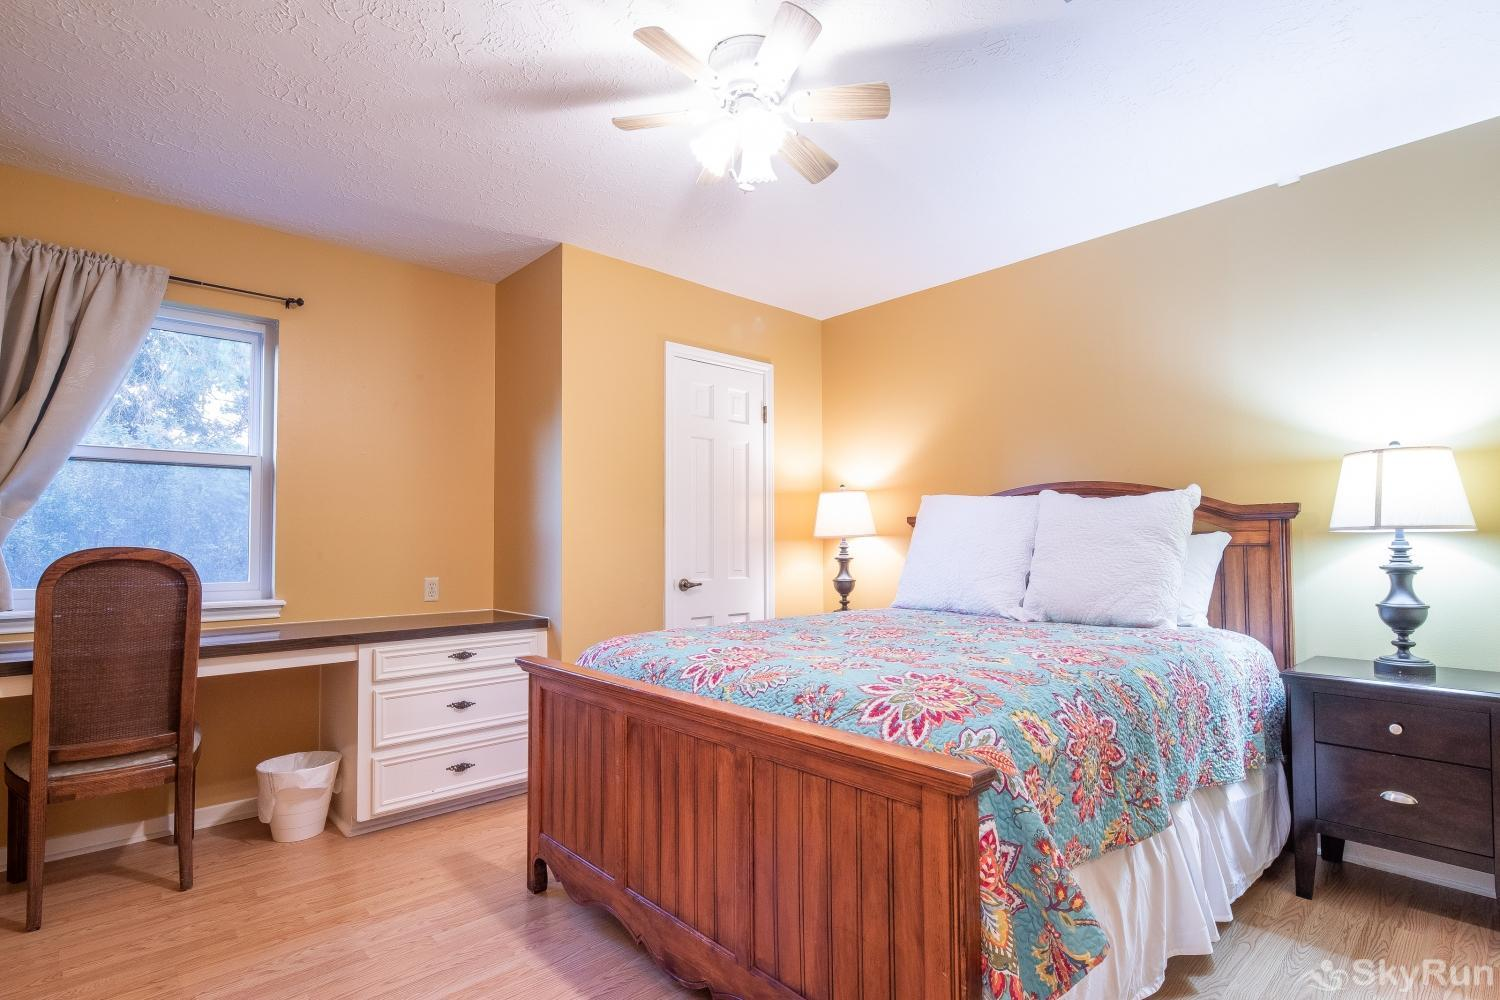 VALLEY VIEW Second bedroom with queen bed